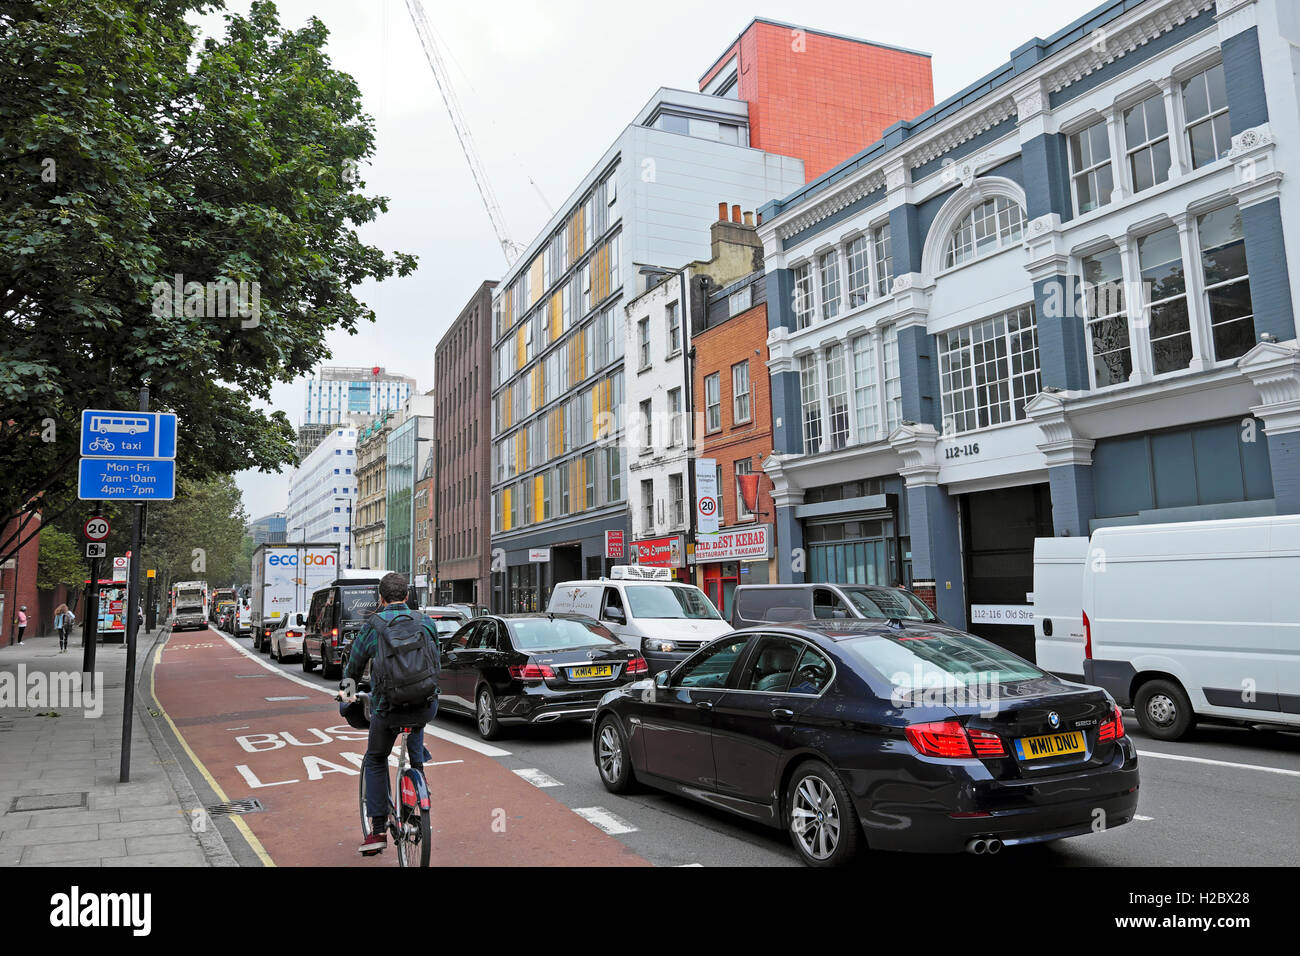 Cyclist in bicycle lane amidst car traffic on Old Street cycling towards Silicon Roundabout in London E1  KATHY - Stock Image